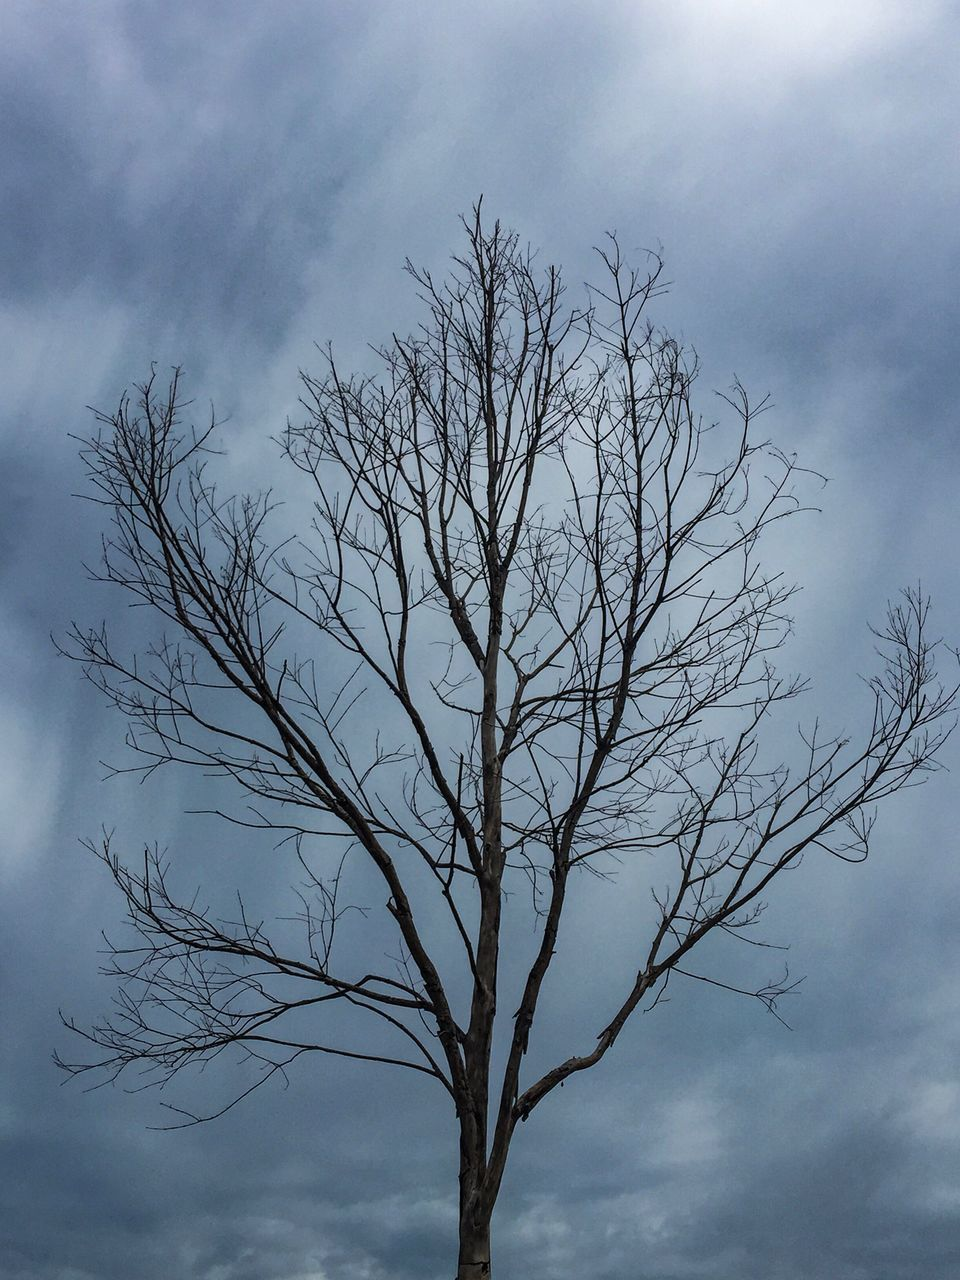 sky, tree, branch, bare tree, nature, tranquility, low angle view, beauty in nature, outdoors, lone, no people, day